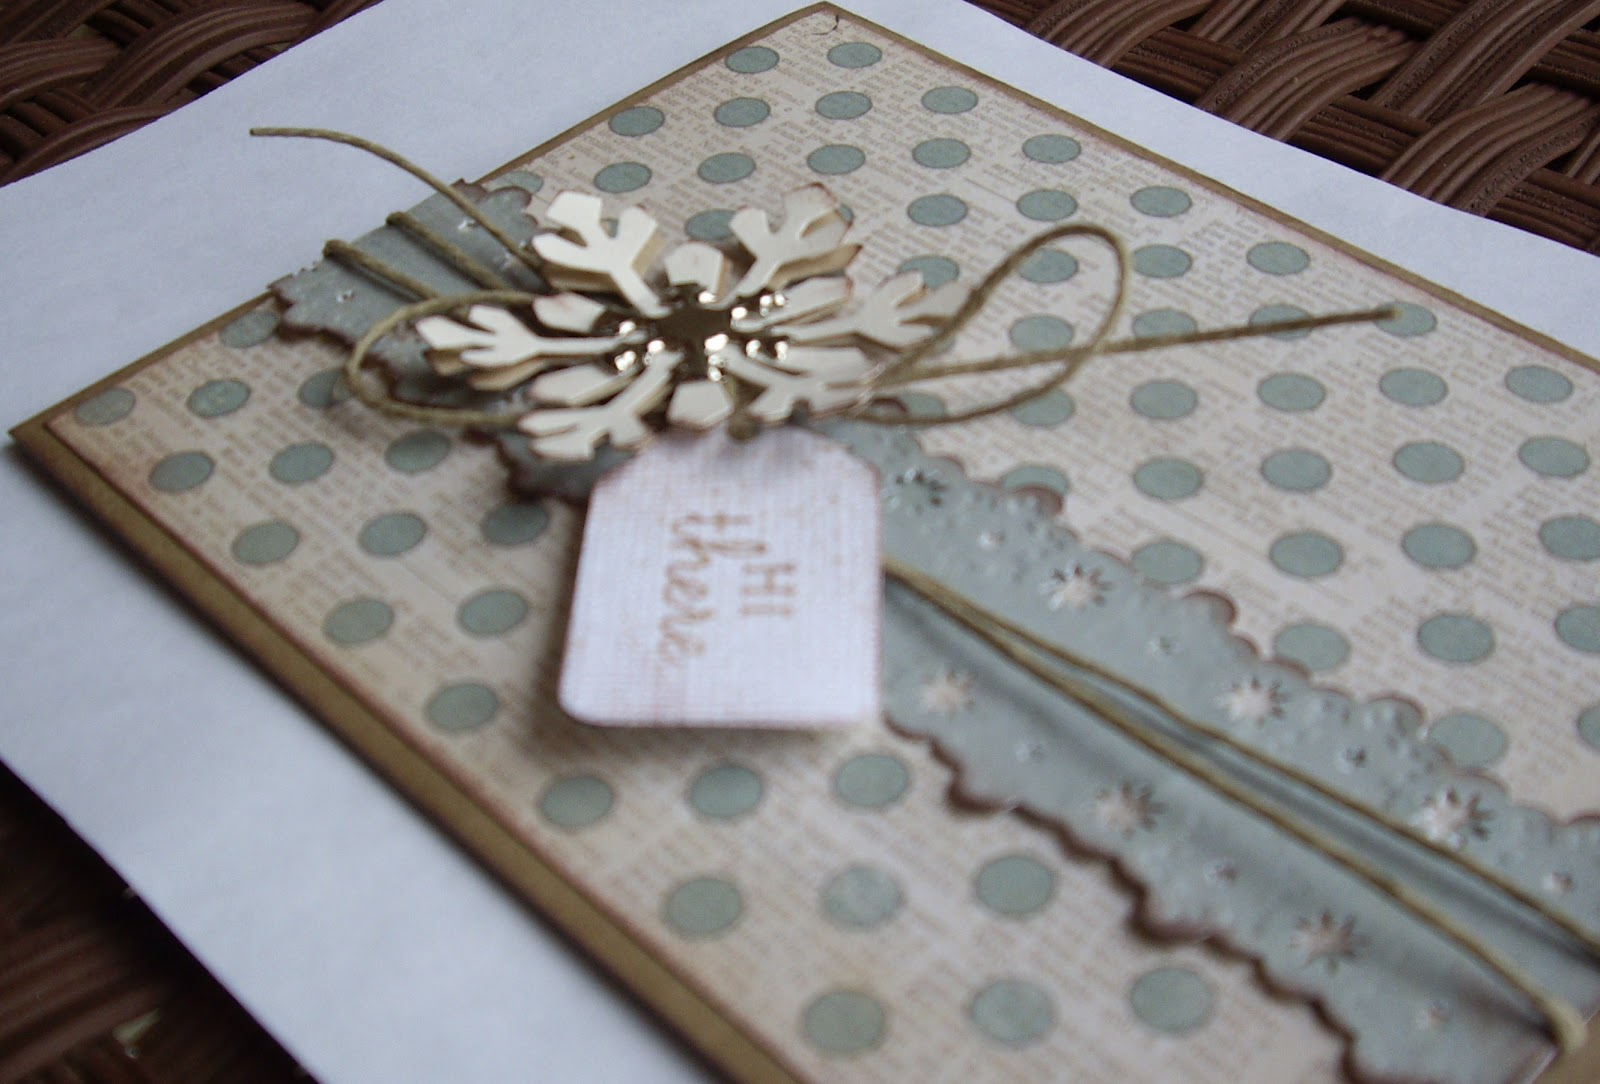 martha stewart paper snowflakes Learn how to make paper snowflakes from the experts at martha stewart living they can be used to decorate window panes, wreaths, christmas trees, or added to wrapped gifts and cards.